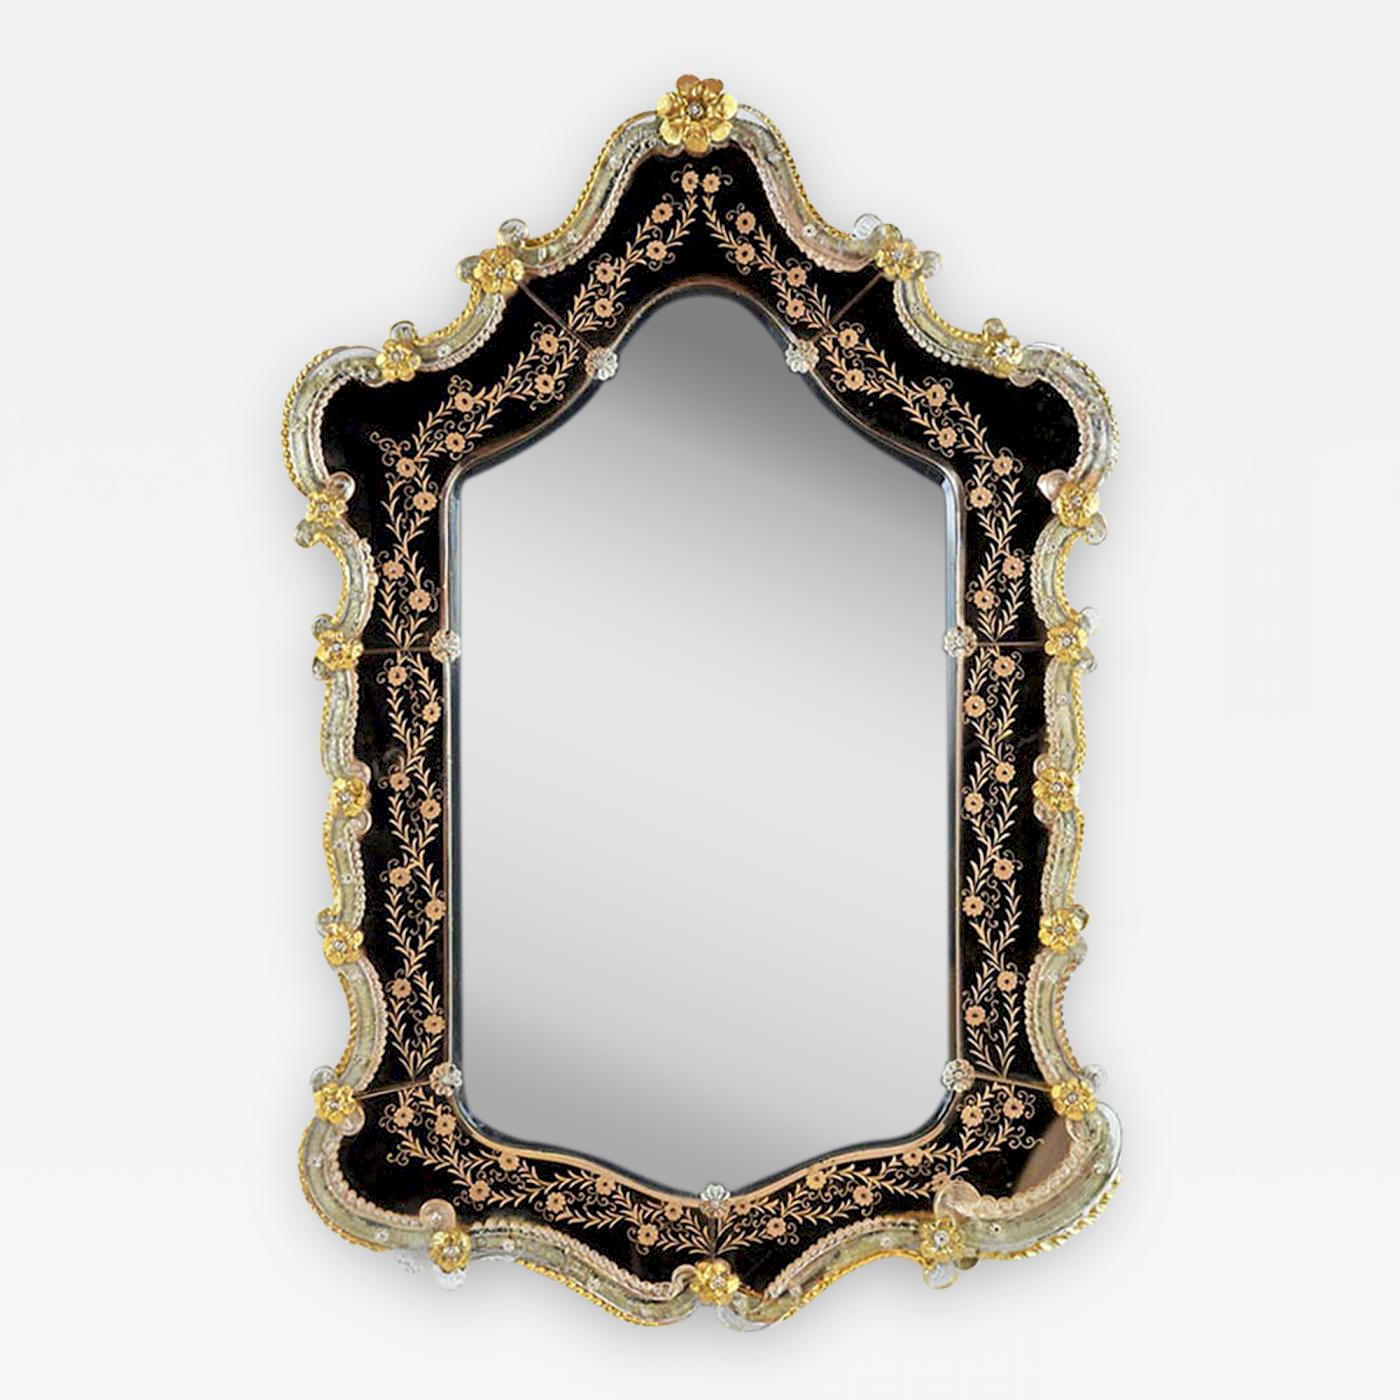 Preferred 19th Century Italian Venetian Style Etched Wall Mirror Intended For Etched Wall Mirrors (View 8 of 20)